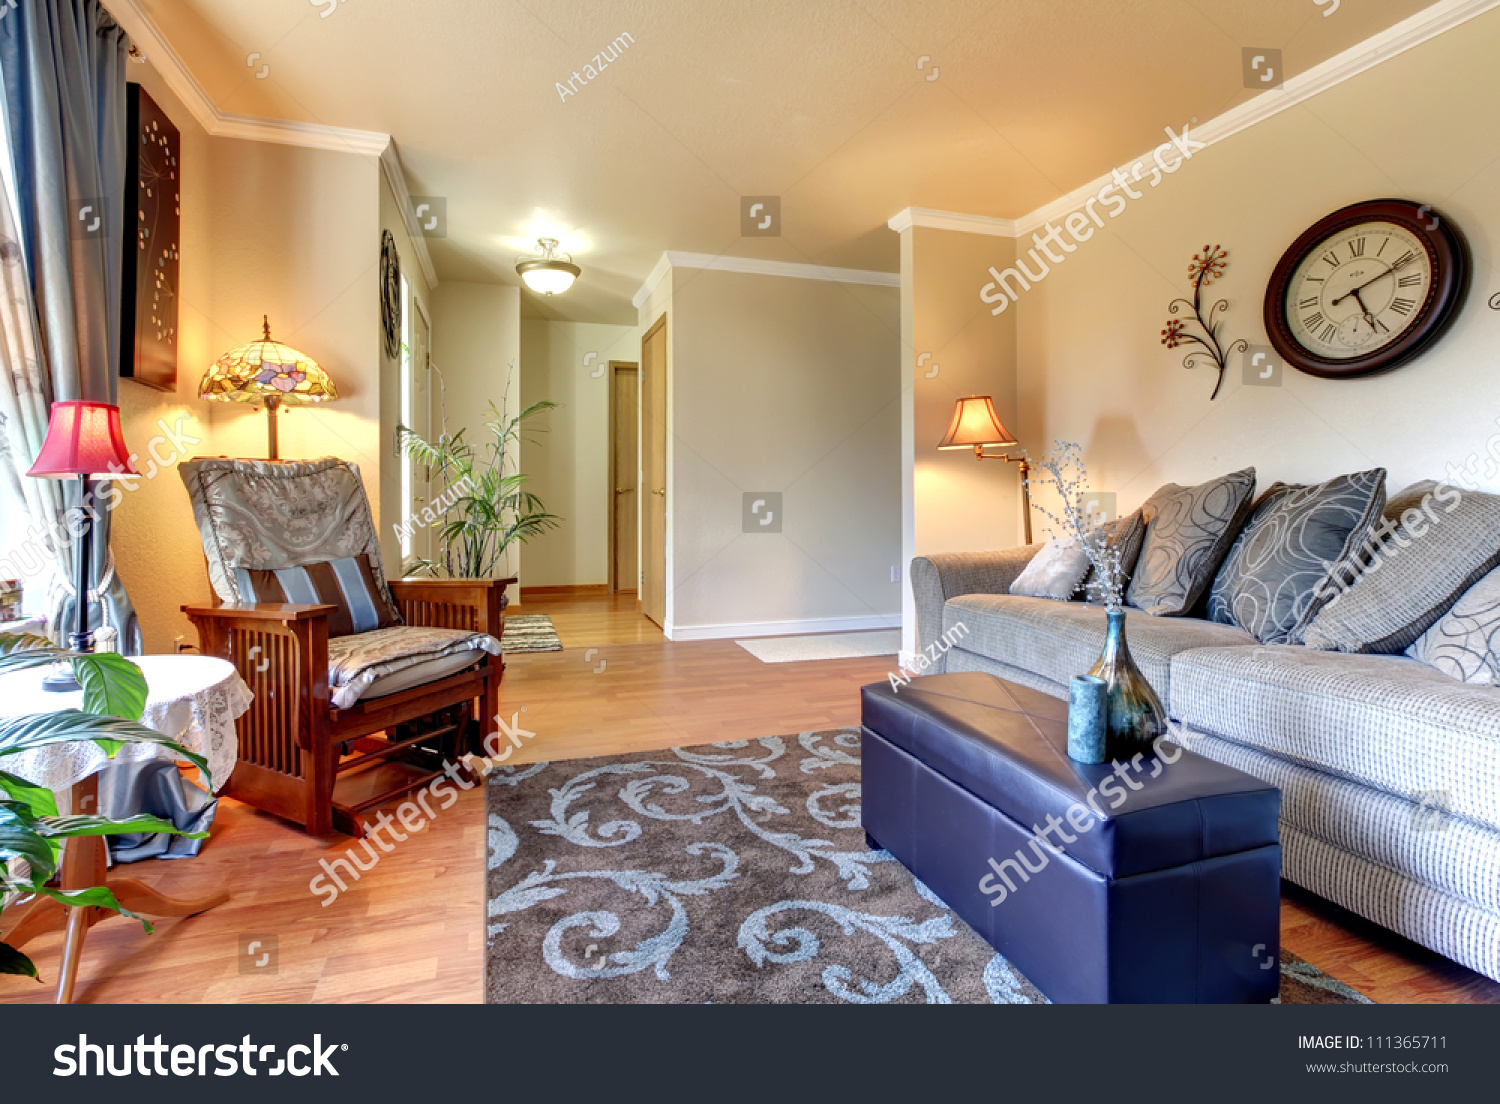 Elegant And Simple Classic Living Room Interior Design With Beige And Blue Stock Photo